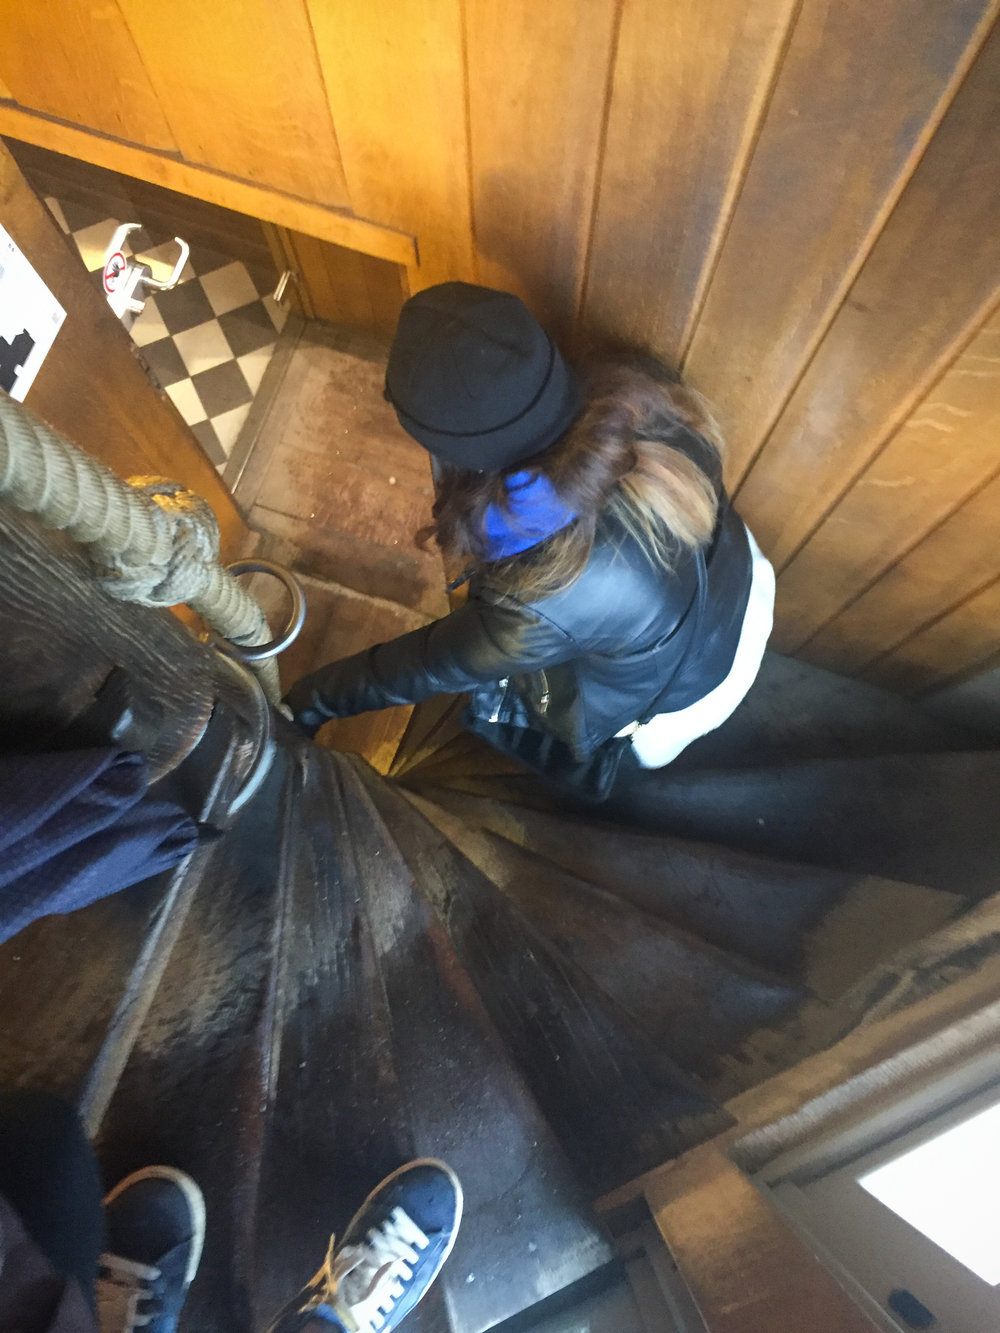 Climbing the 366 steps of the Belfry tower